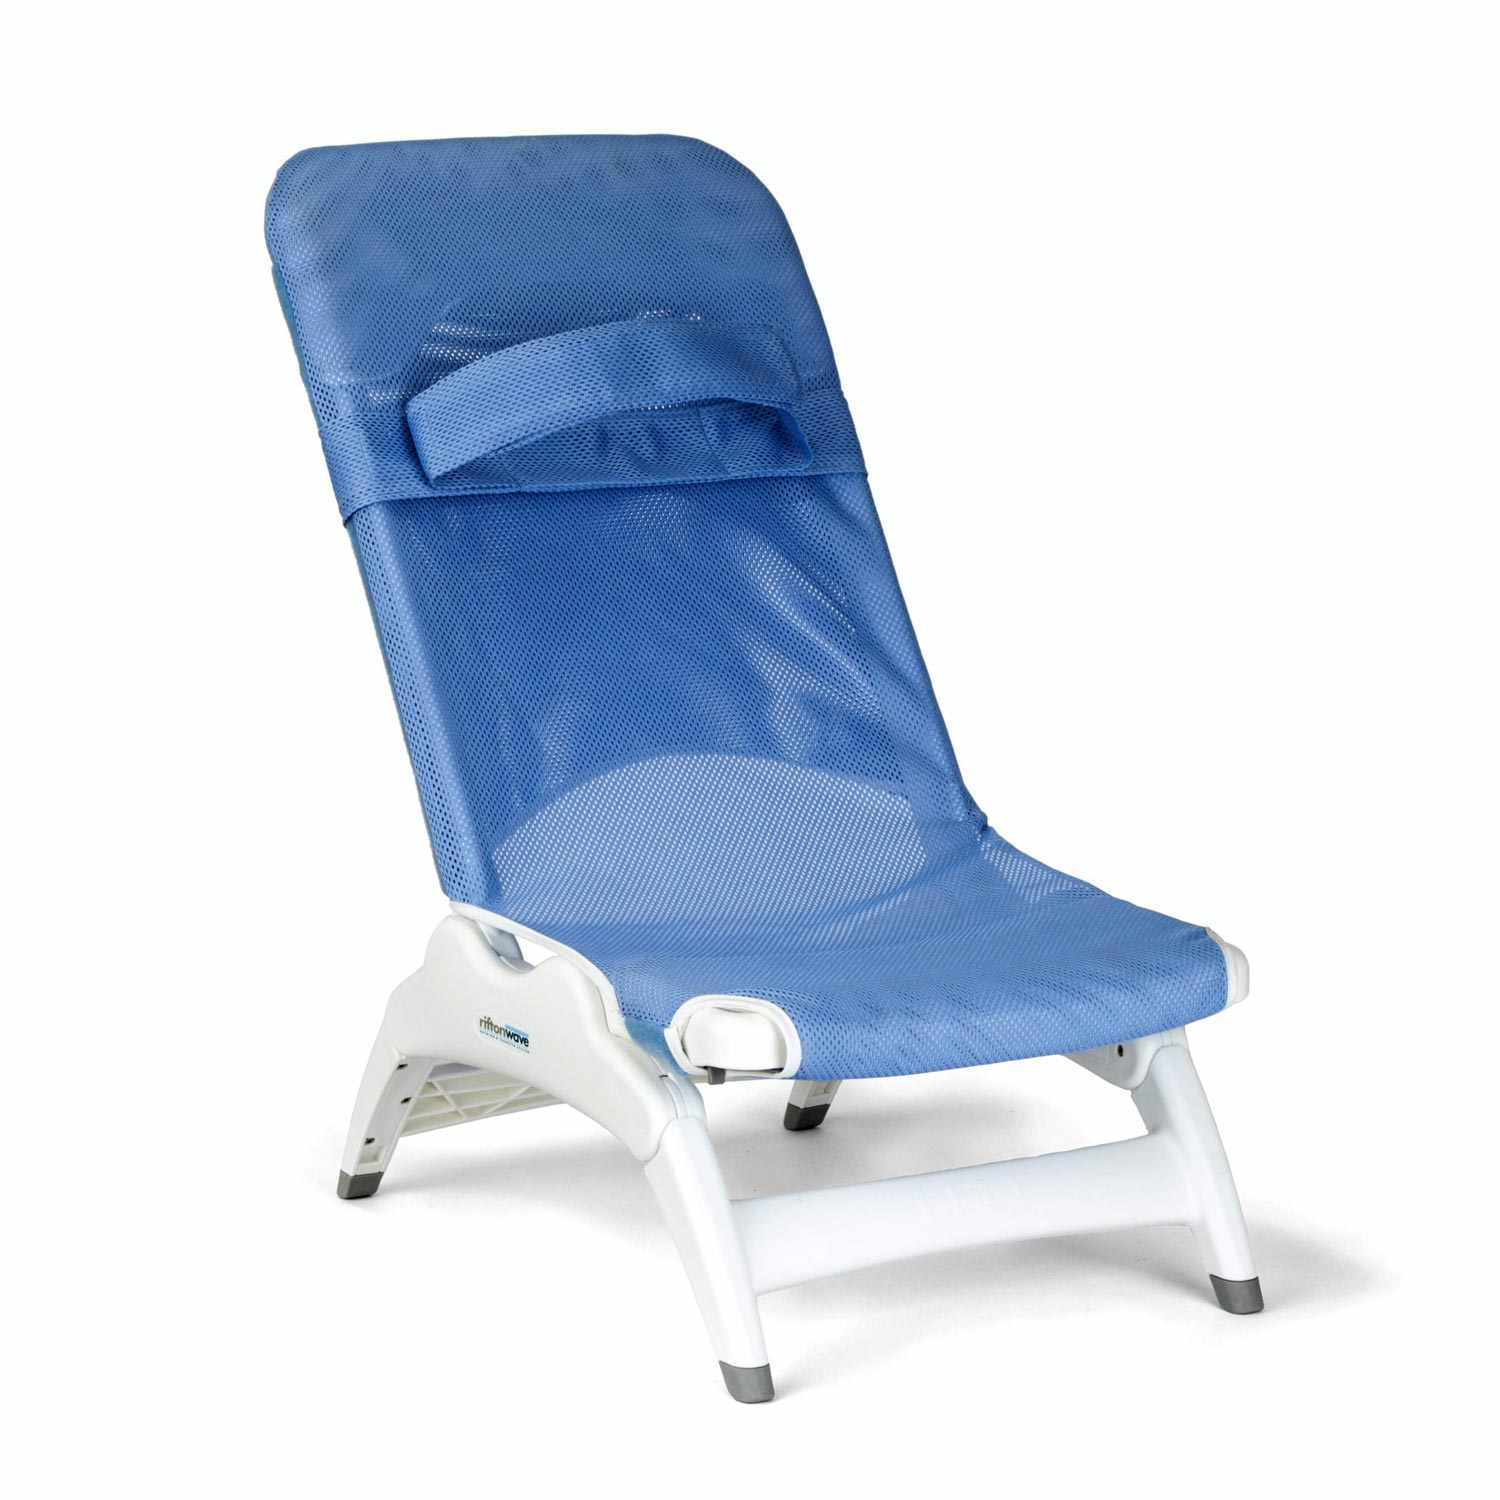 Rifton wave bath chair - small